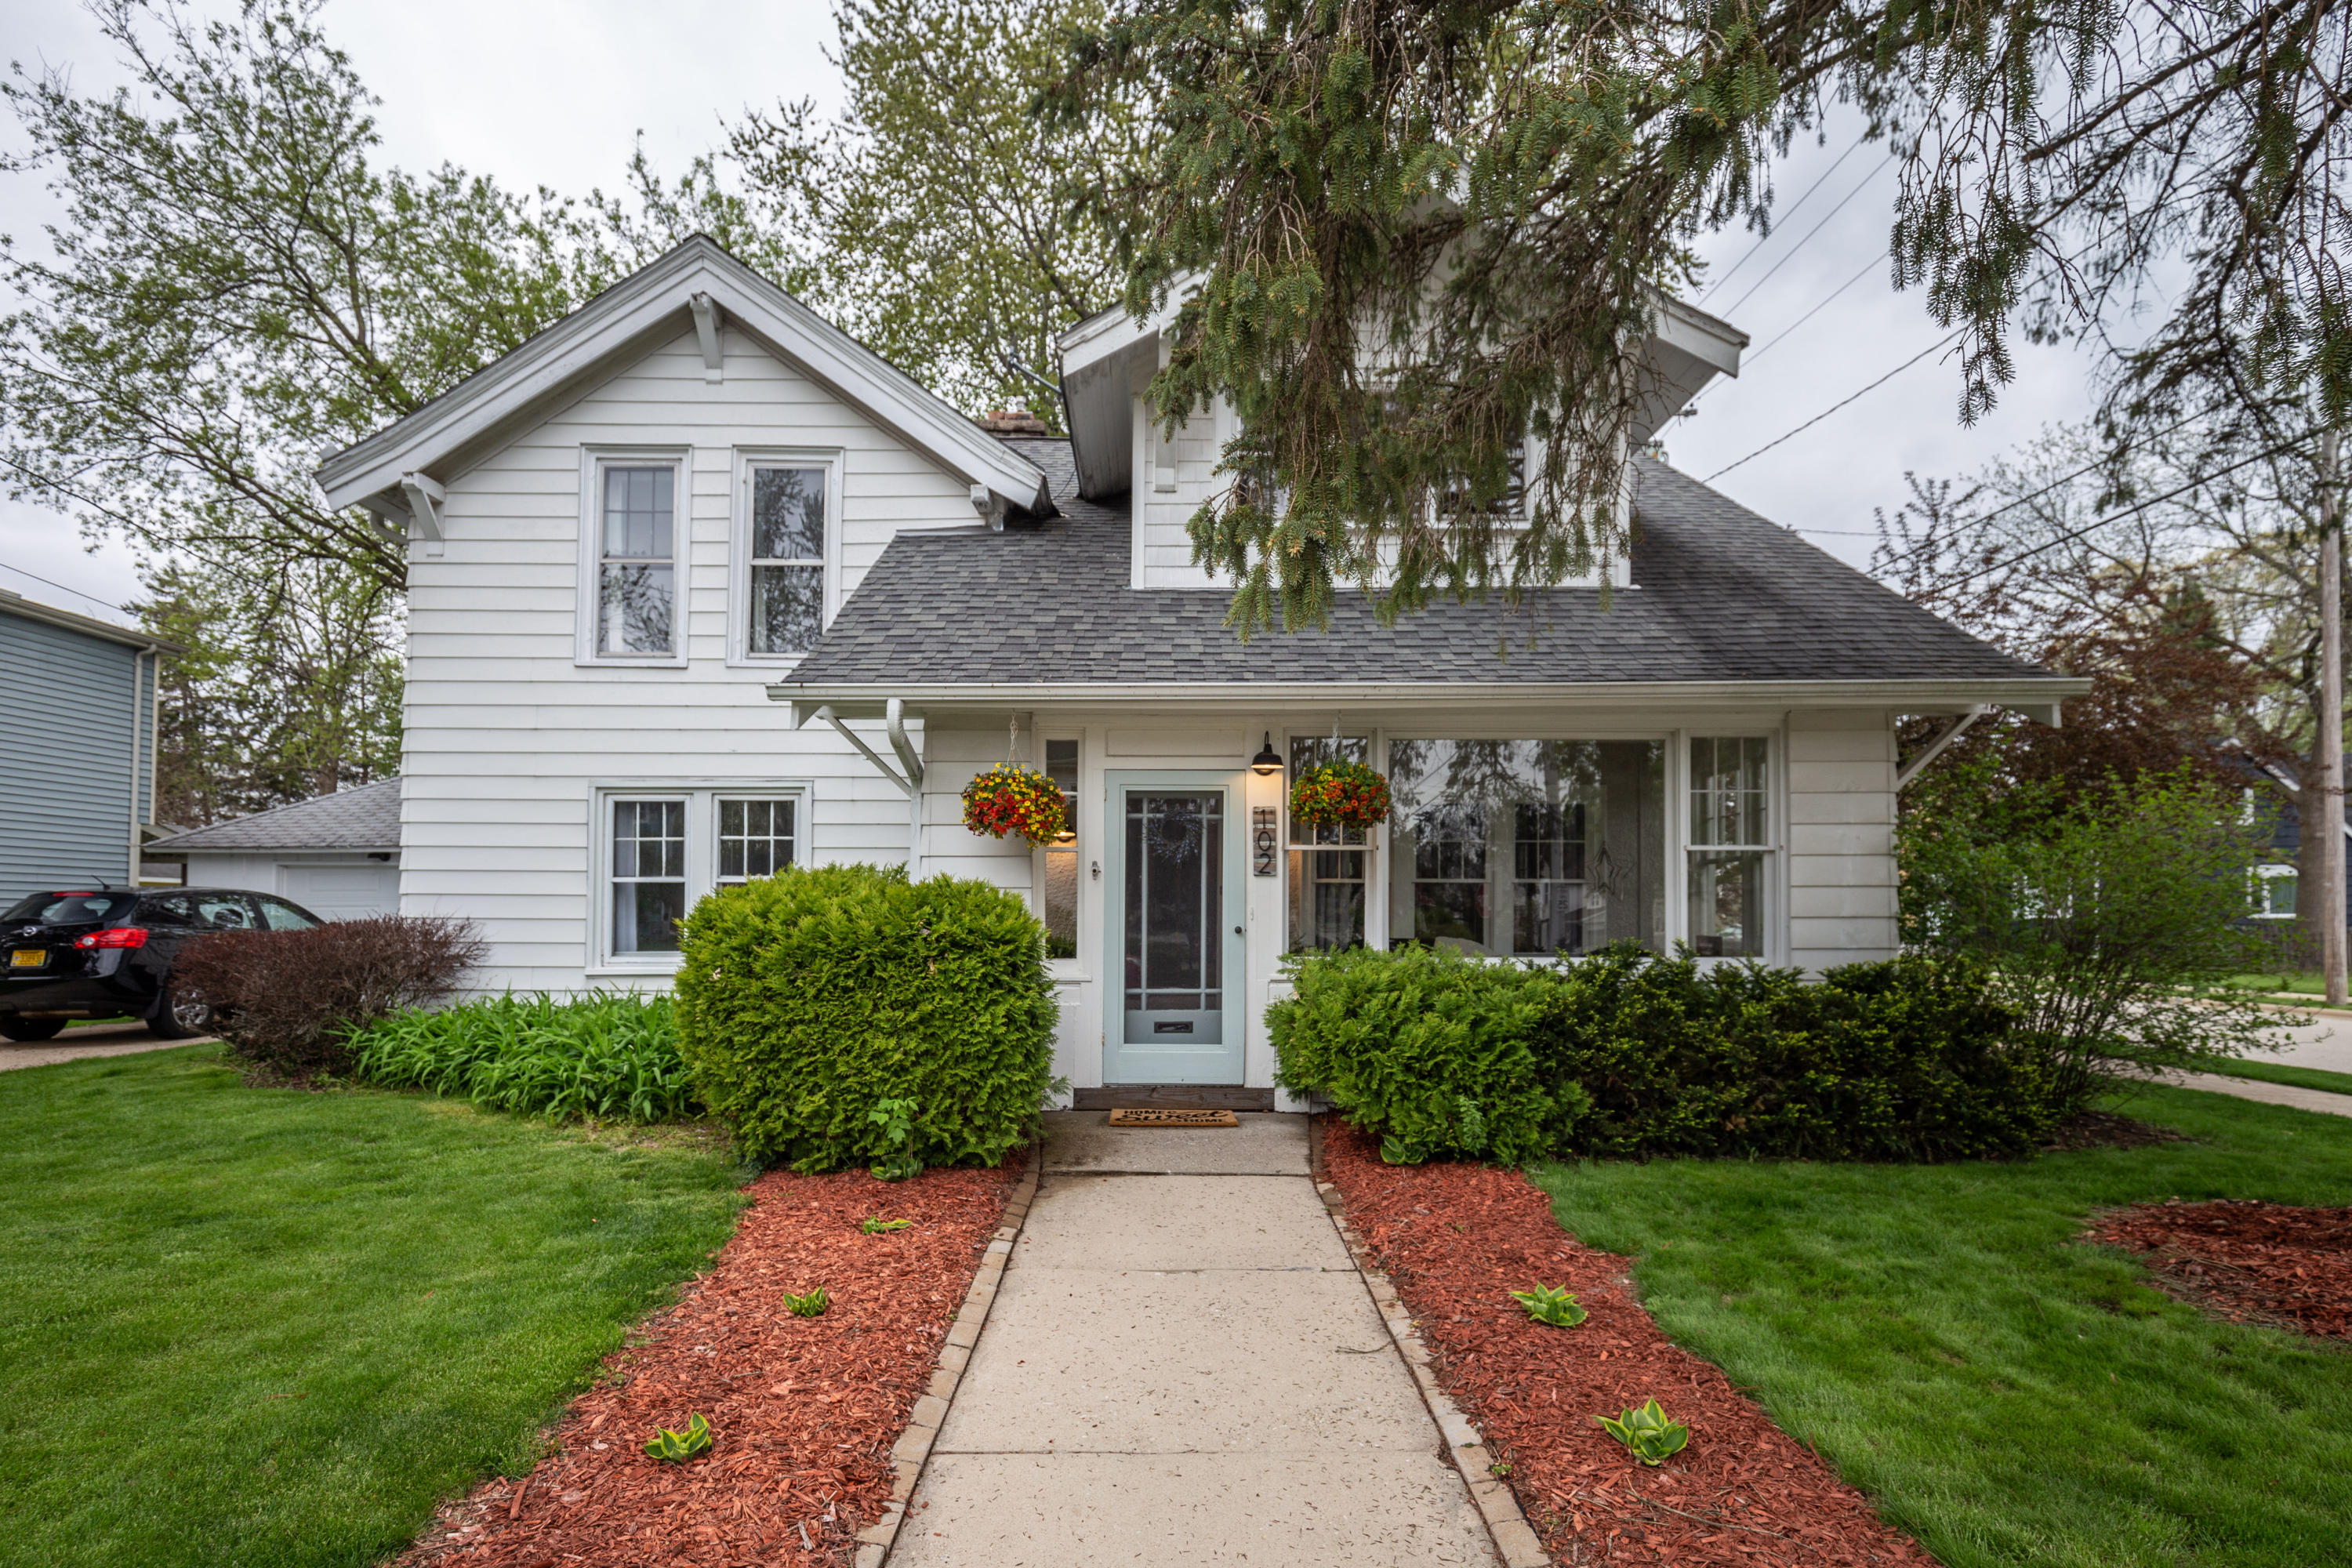 102 Maple St, Oconomowoc, Wisconsin 53066, 3 Bedrooms Bedrooms, 8 Rooms Rooms,1 BathroomBathrooms,Single-Family,For Sale,Maple St,1637668